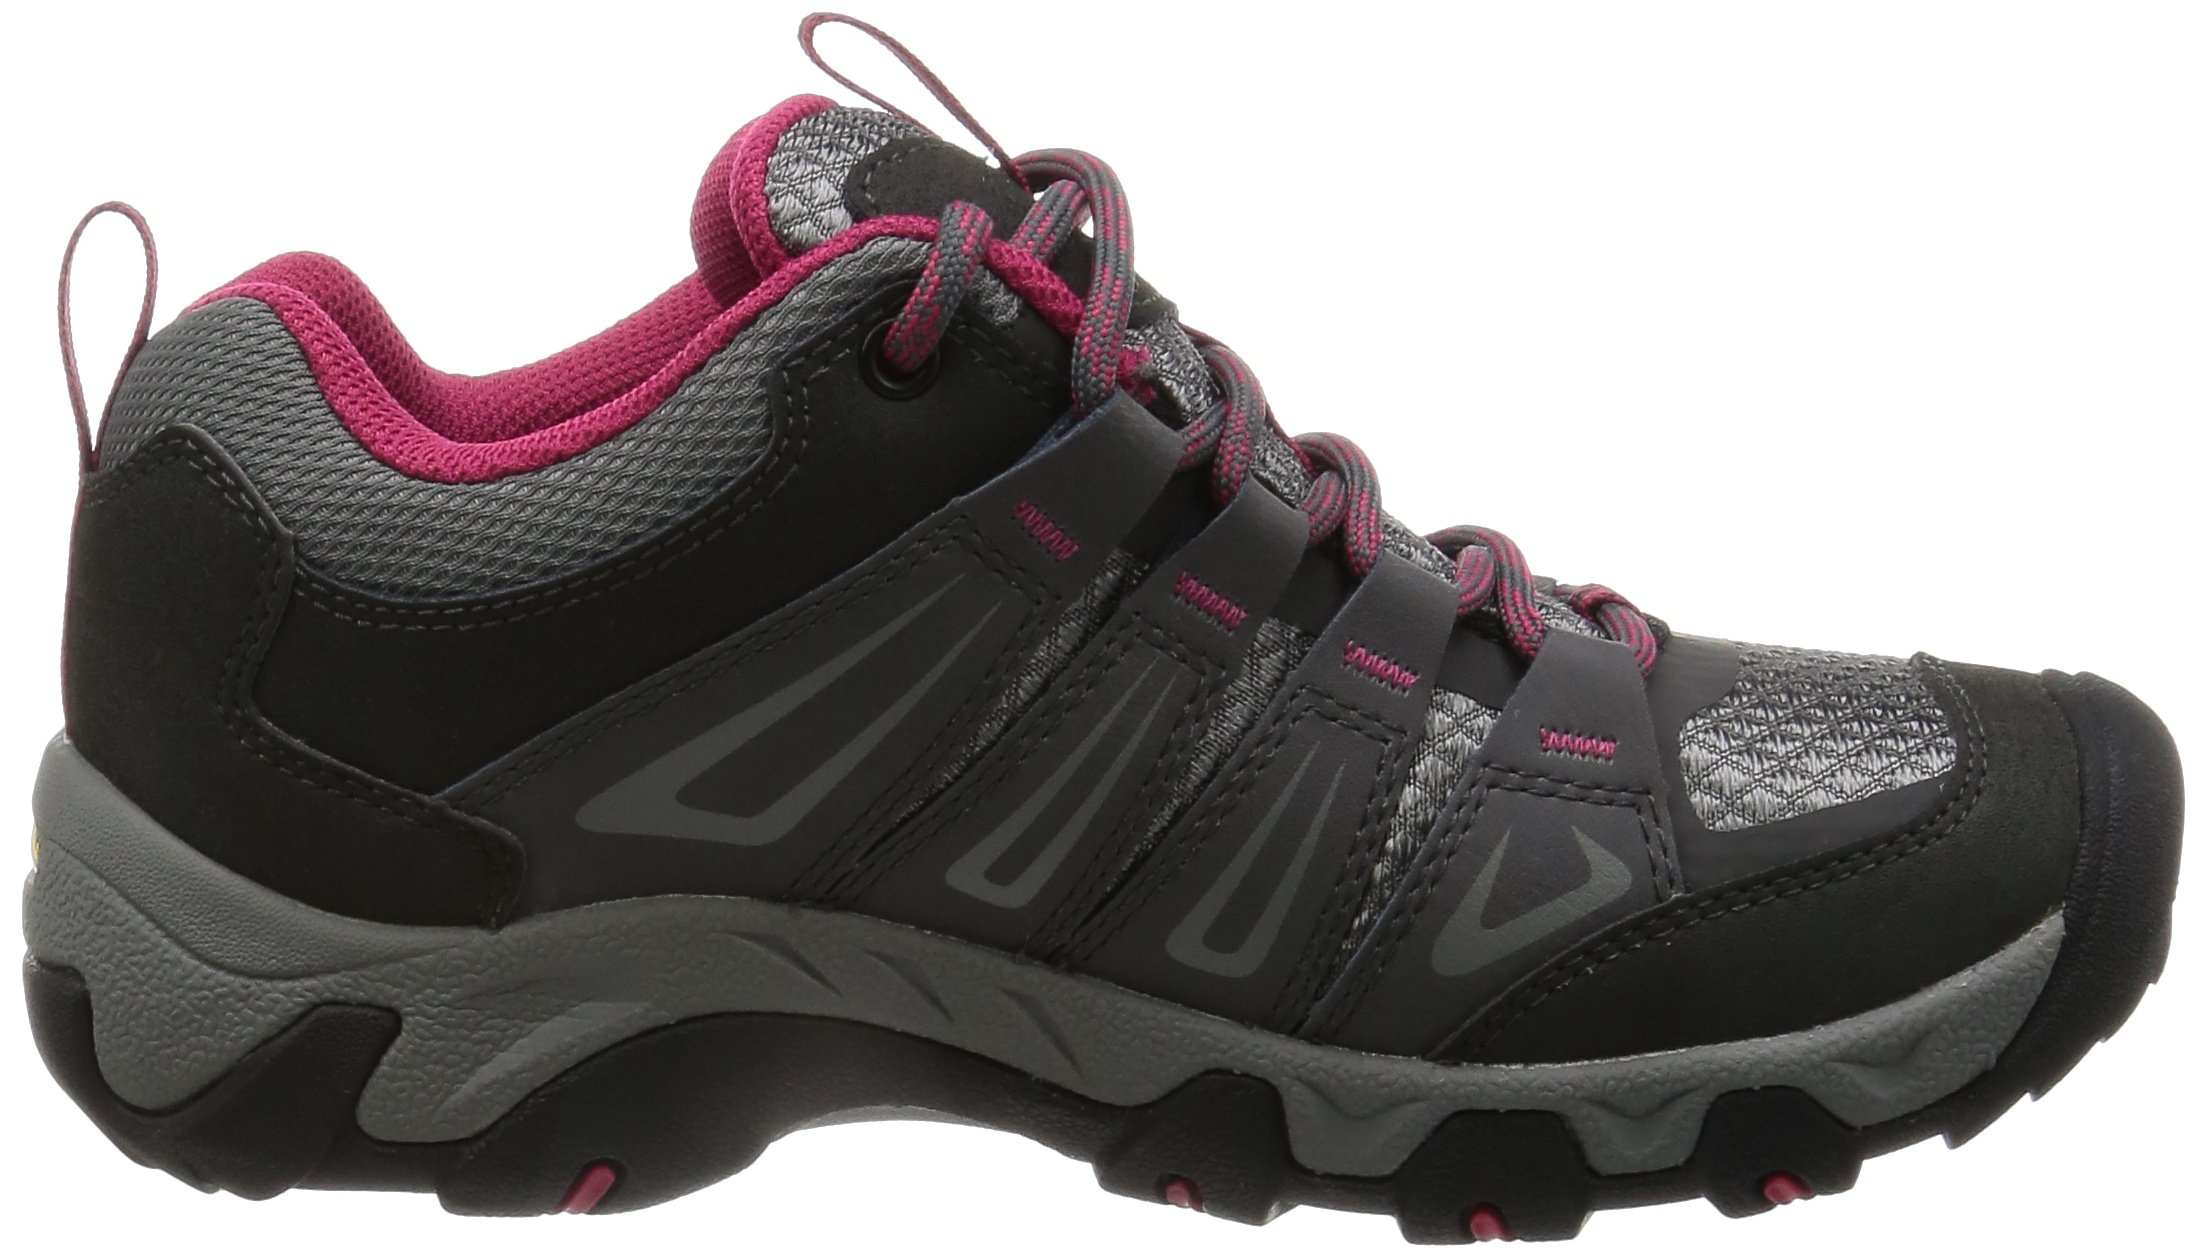 KEEN Women's Oakridge Waterproof Shoe, Magnet/Rose, 9 M US by KEEN (Image #7)